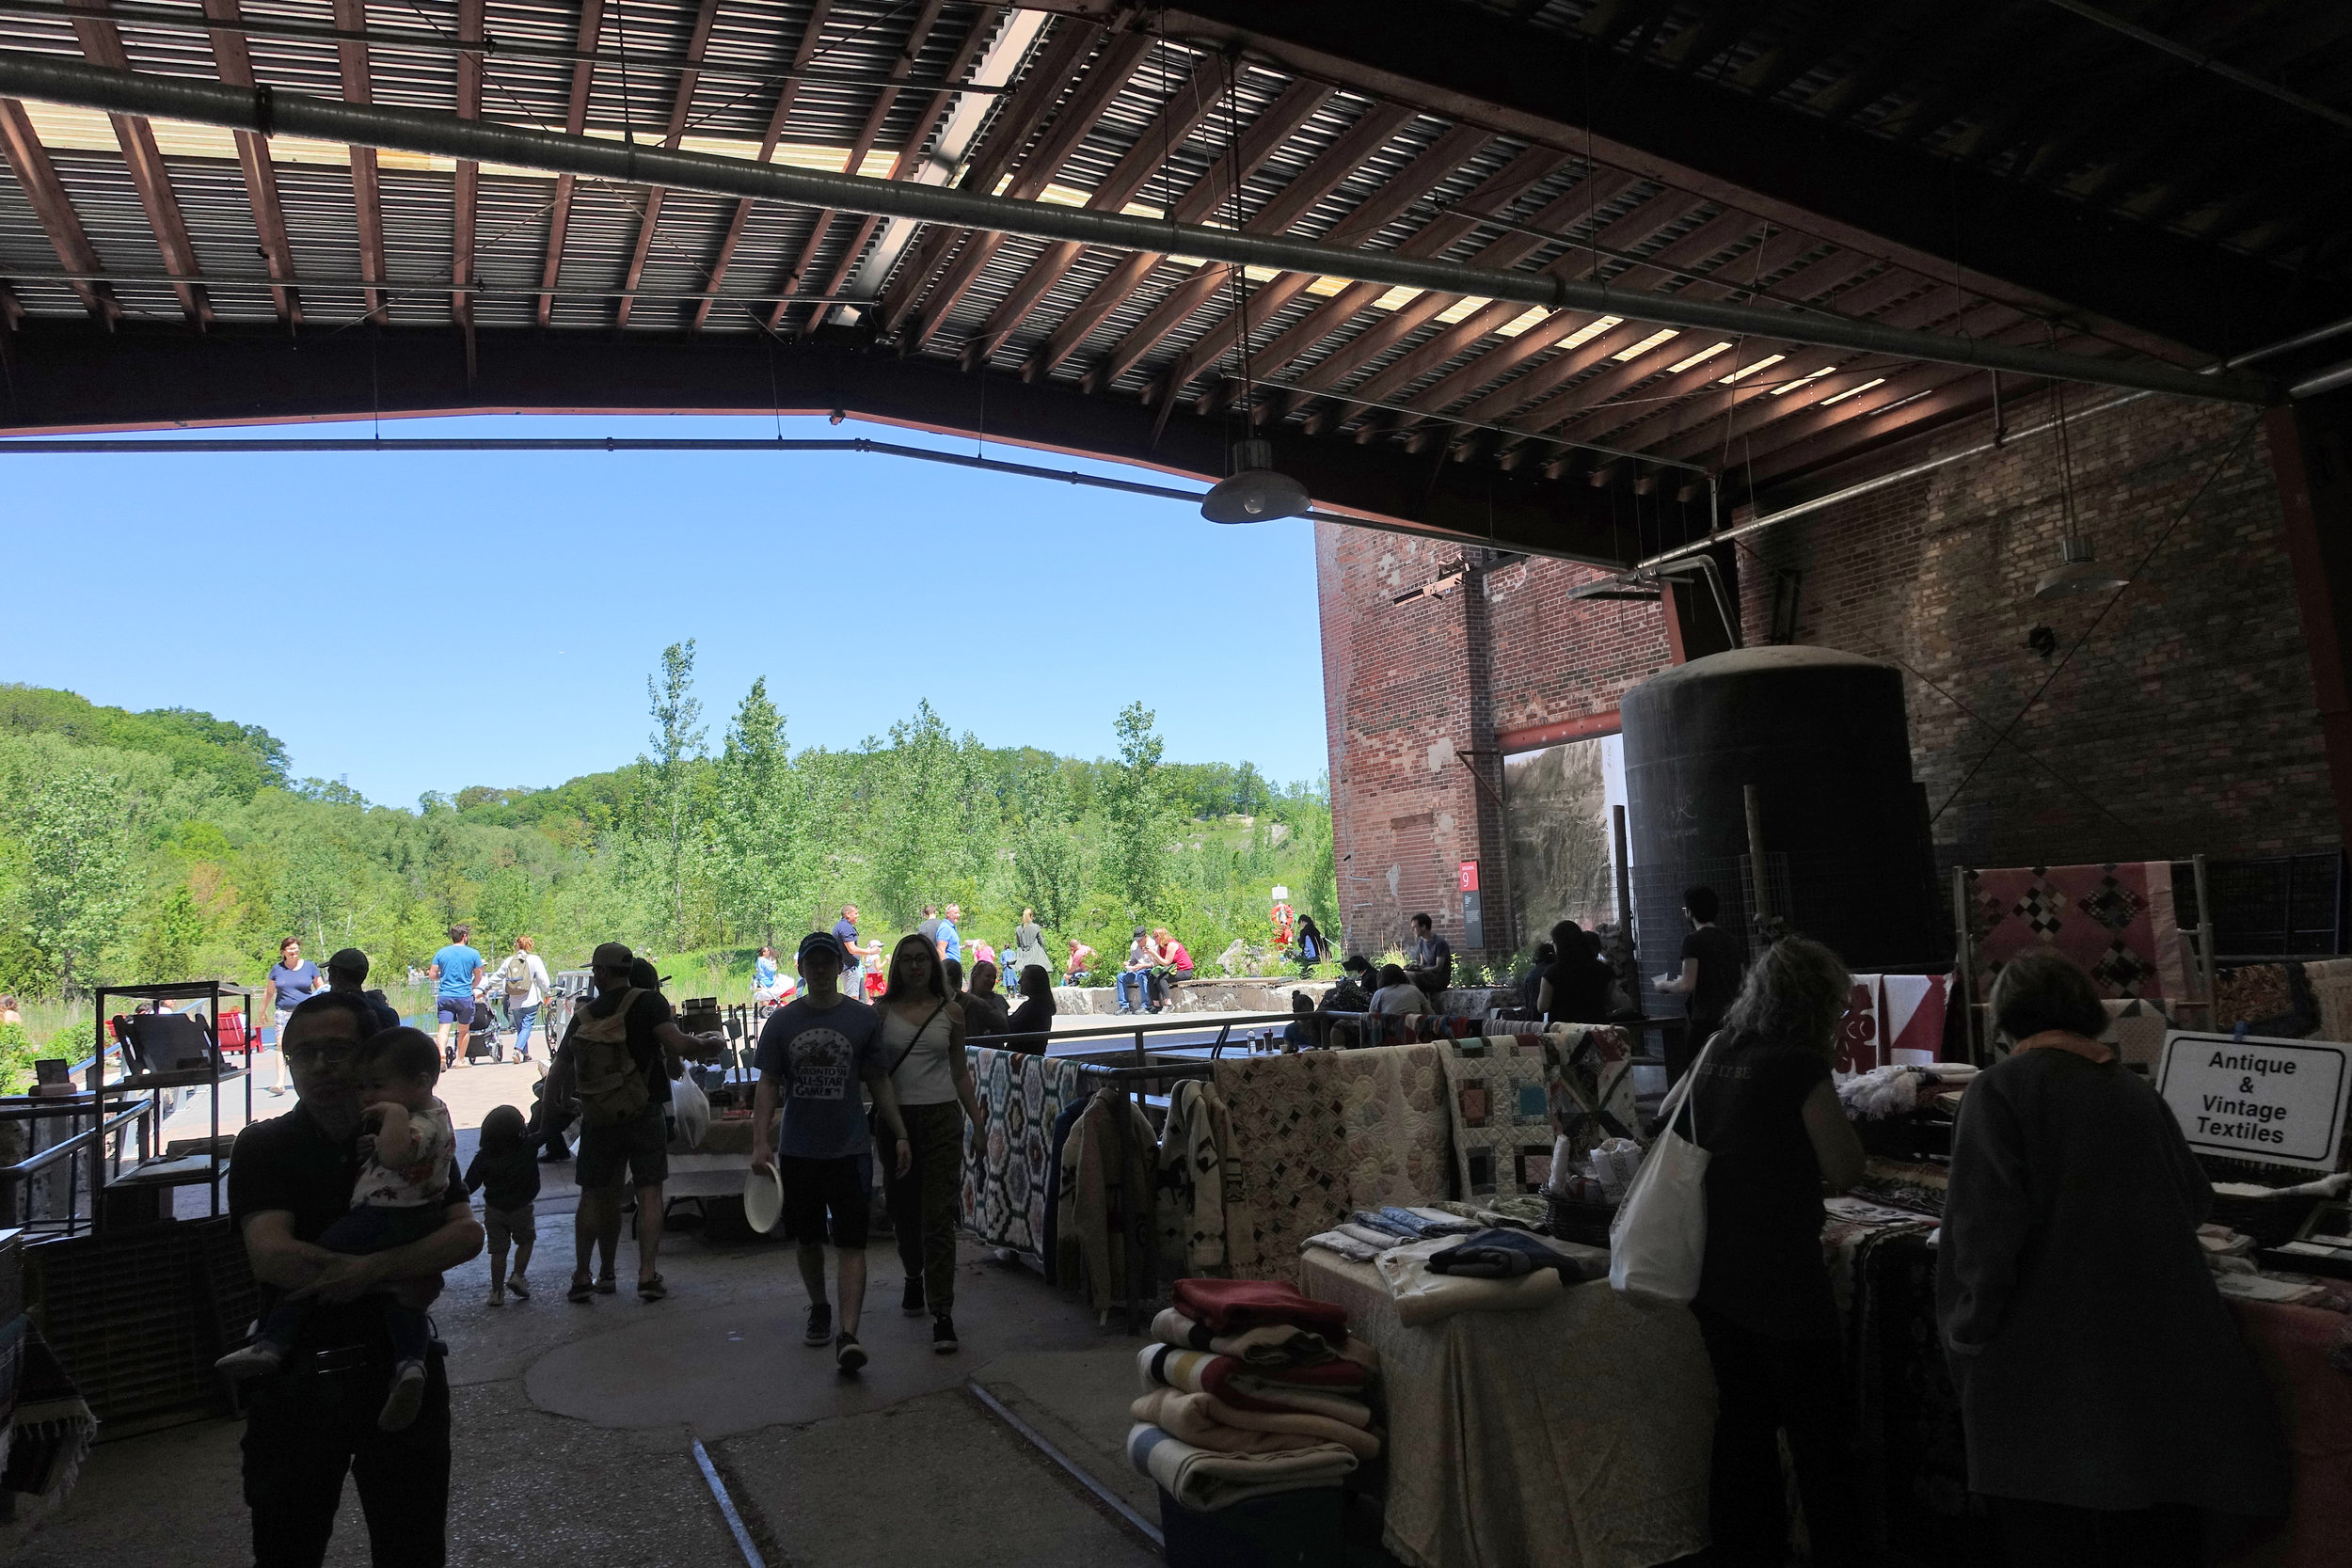 The Evergreen Brickworks on a weekend near the back of the farmer's market.